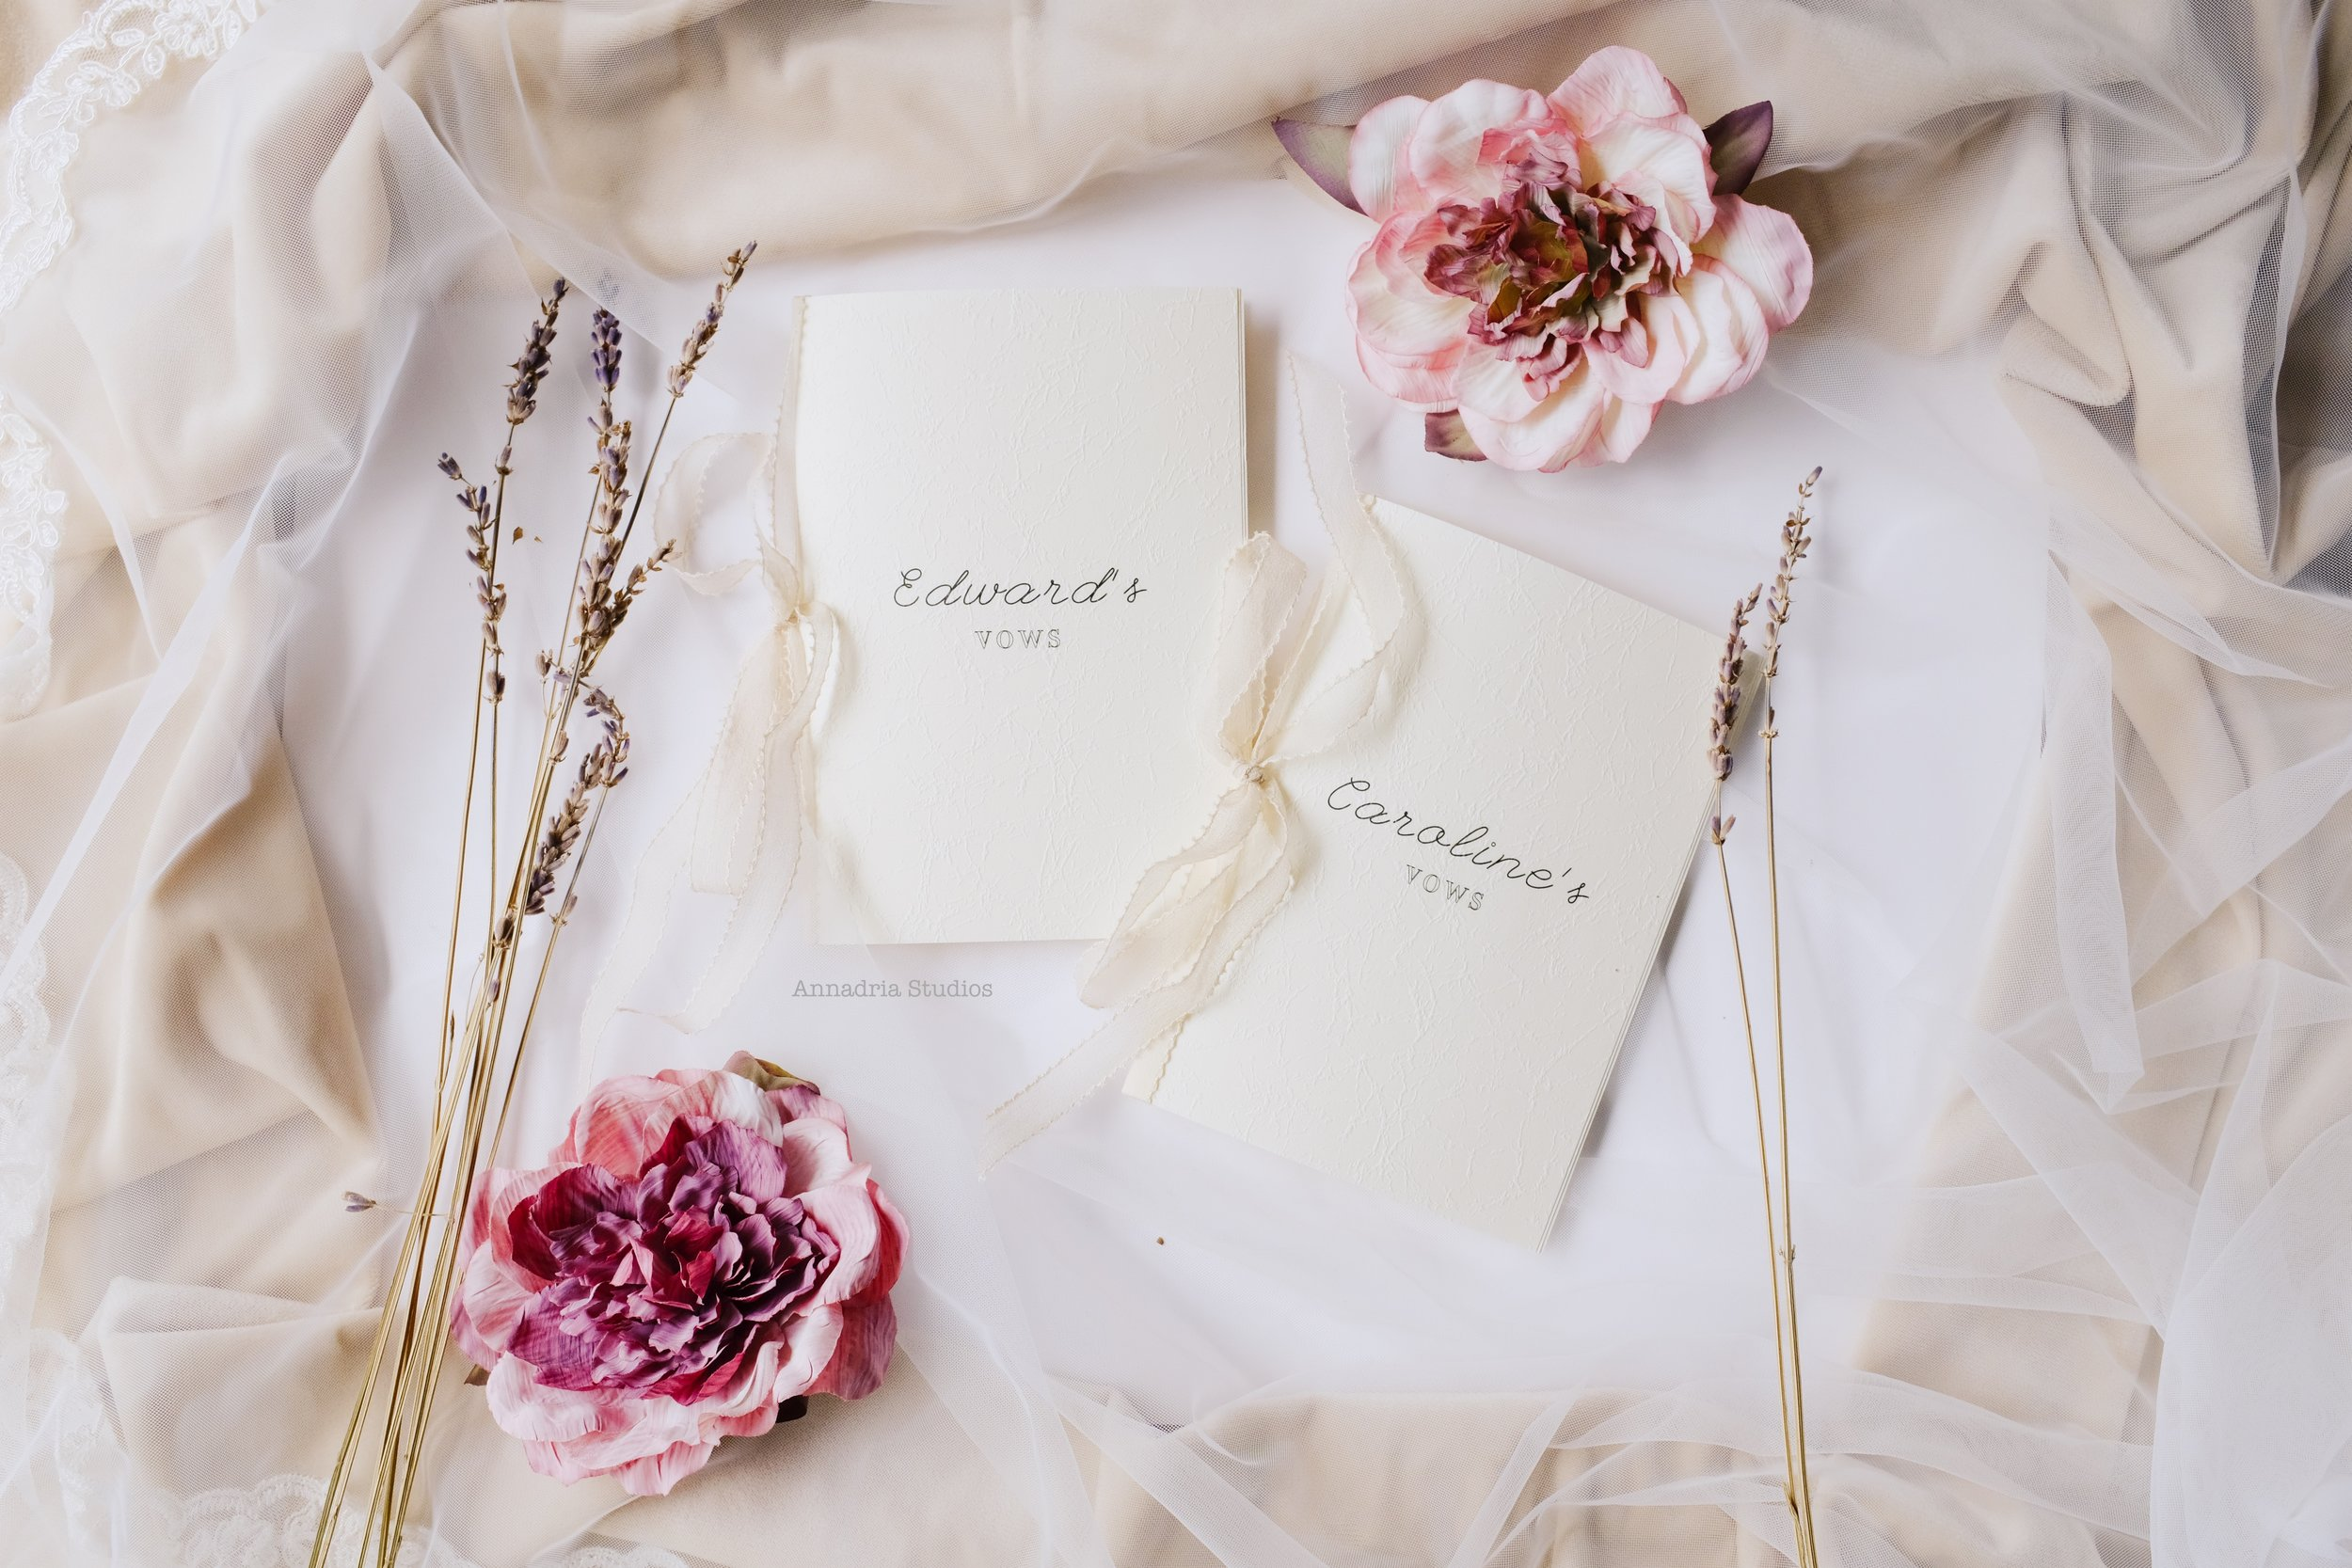 Handmade vow booklets, on embossed Japanese paper and bound with delicate silk ribbons.